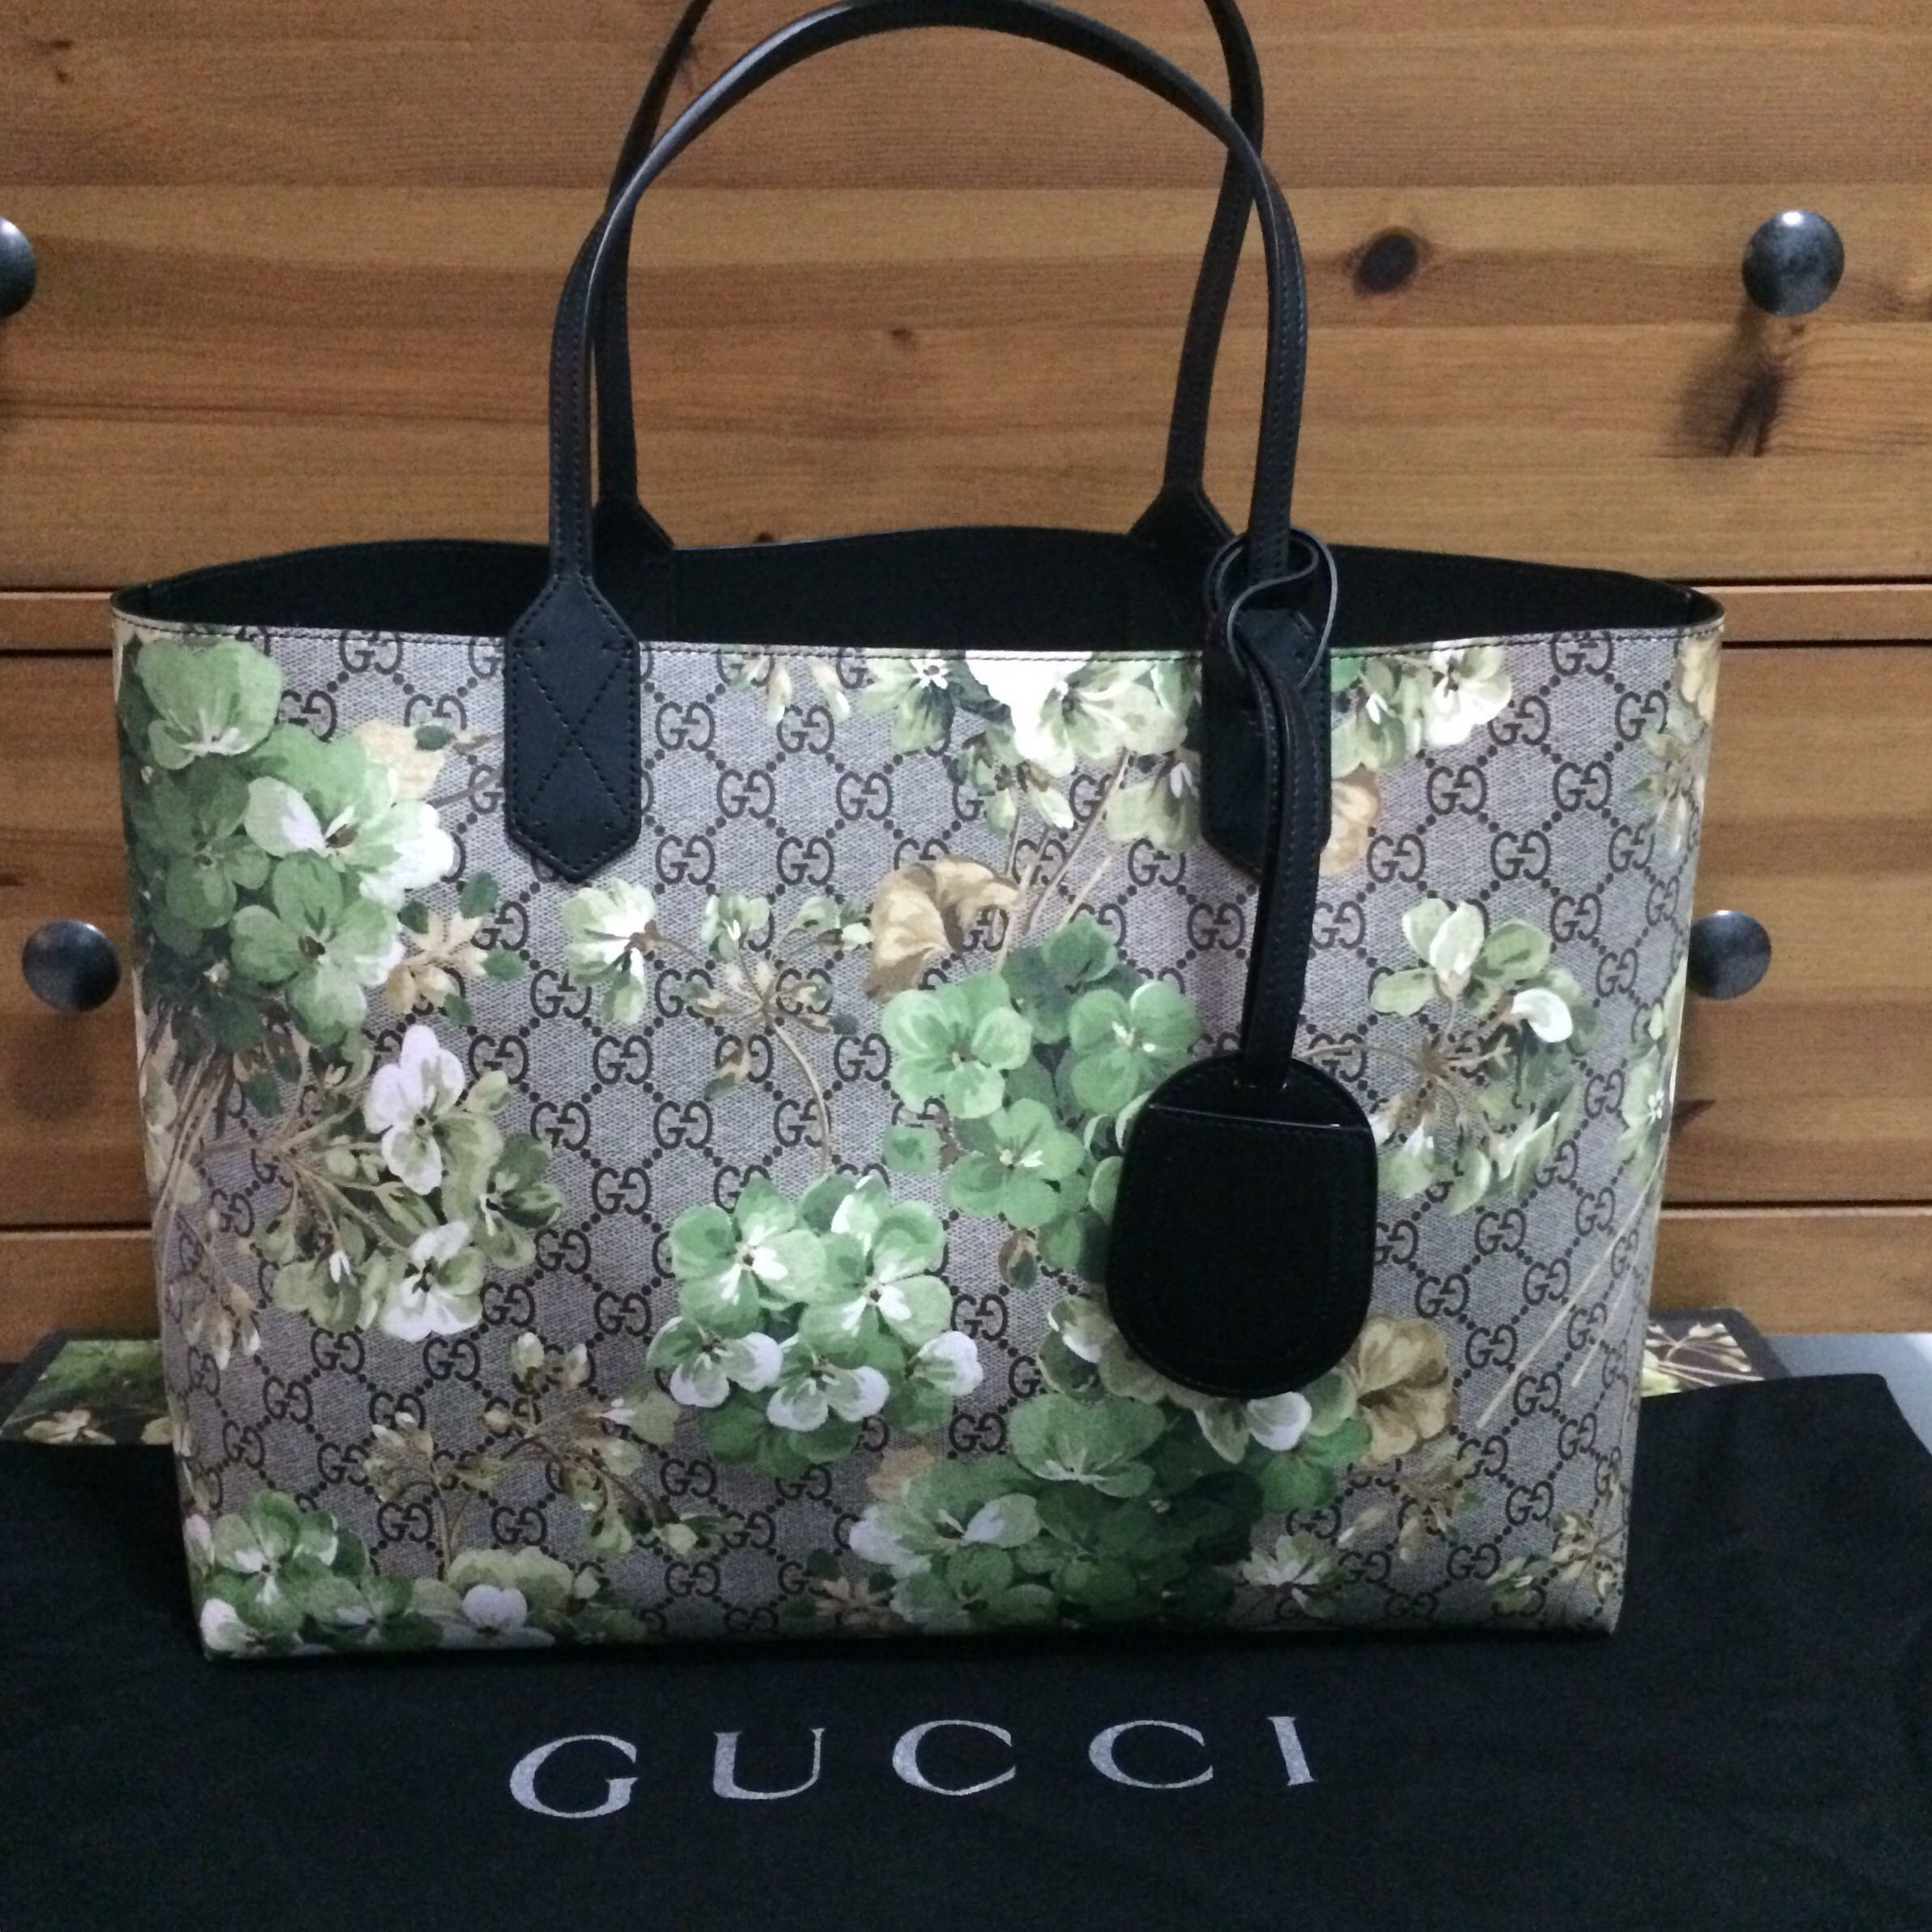 3fbb3b872 Gucci Bloom Reversible Leather Tote, Women's Fashion, Bags & Wallets on  Carousell